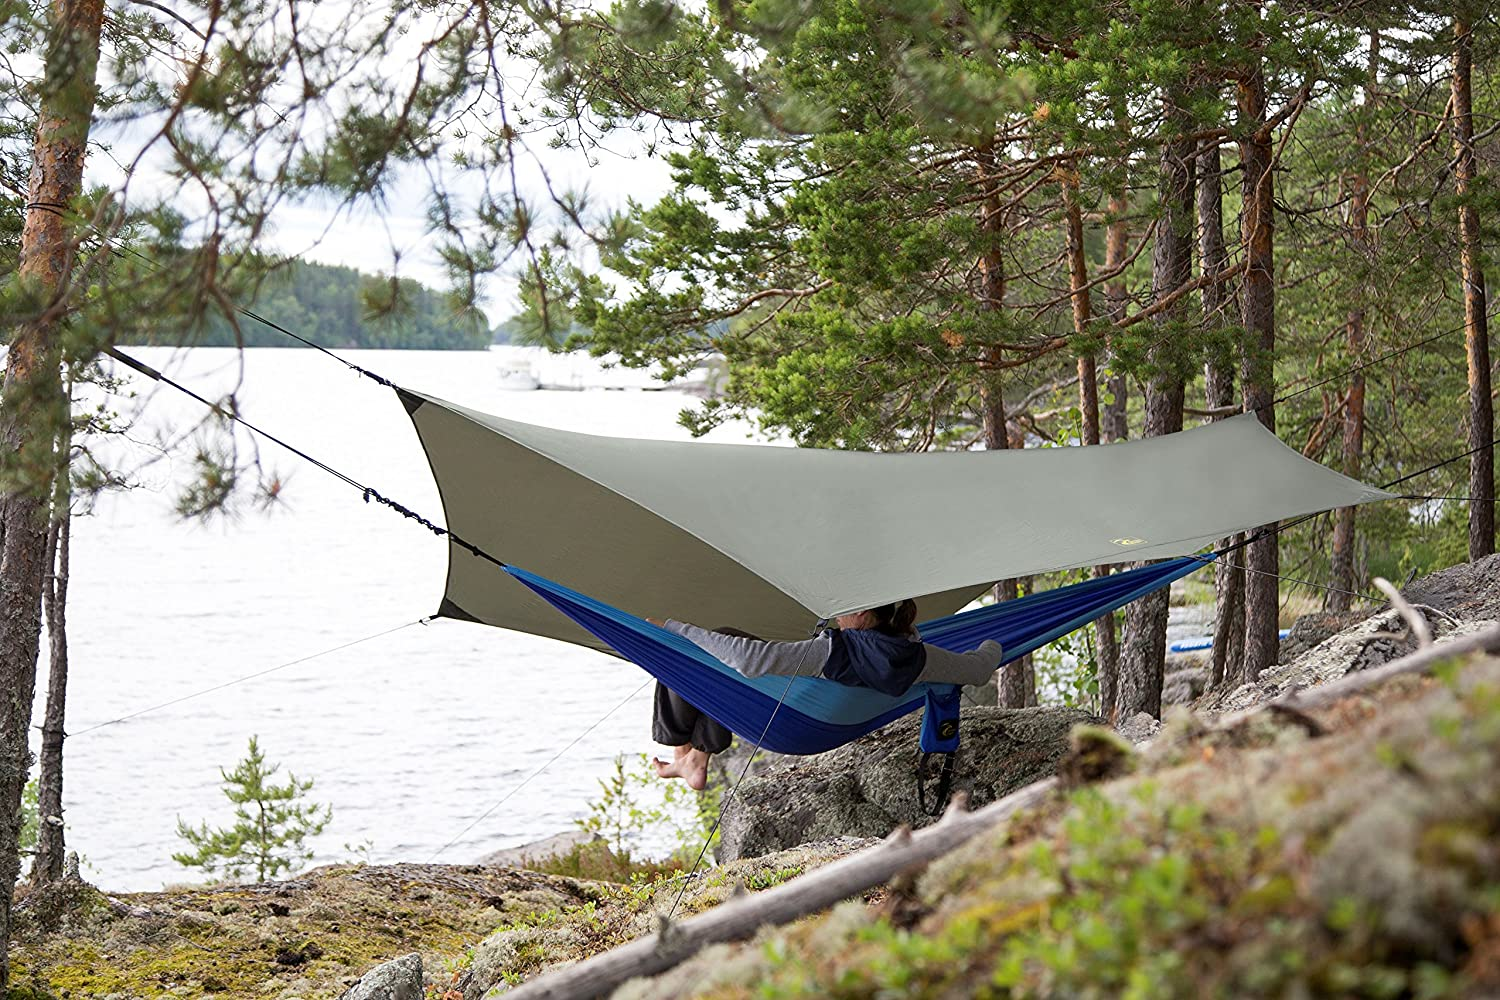 Polyester 190T 126x126 in//320x320 cm GOLDEN EAGLE SUMMER SALE Hammock Rain Sun Fly Tent Tarp PRO Waterproof Camping Shelter Easy Setup Other Lightweight